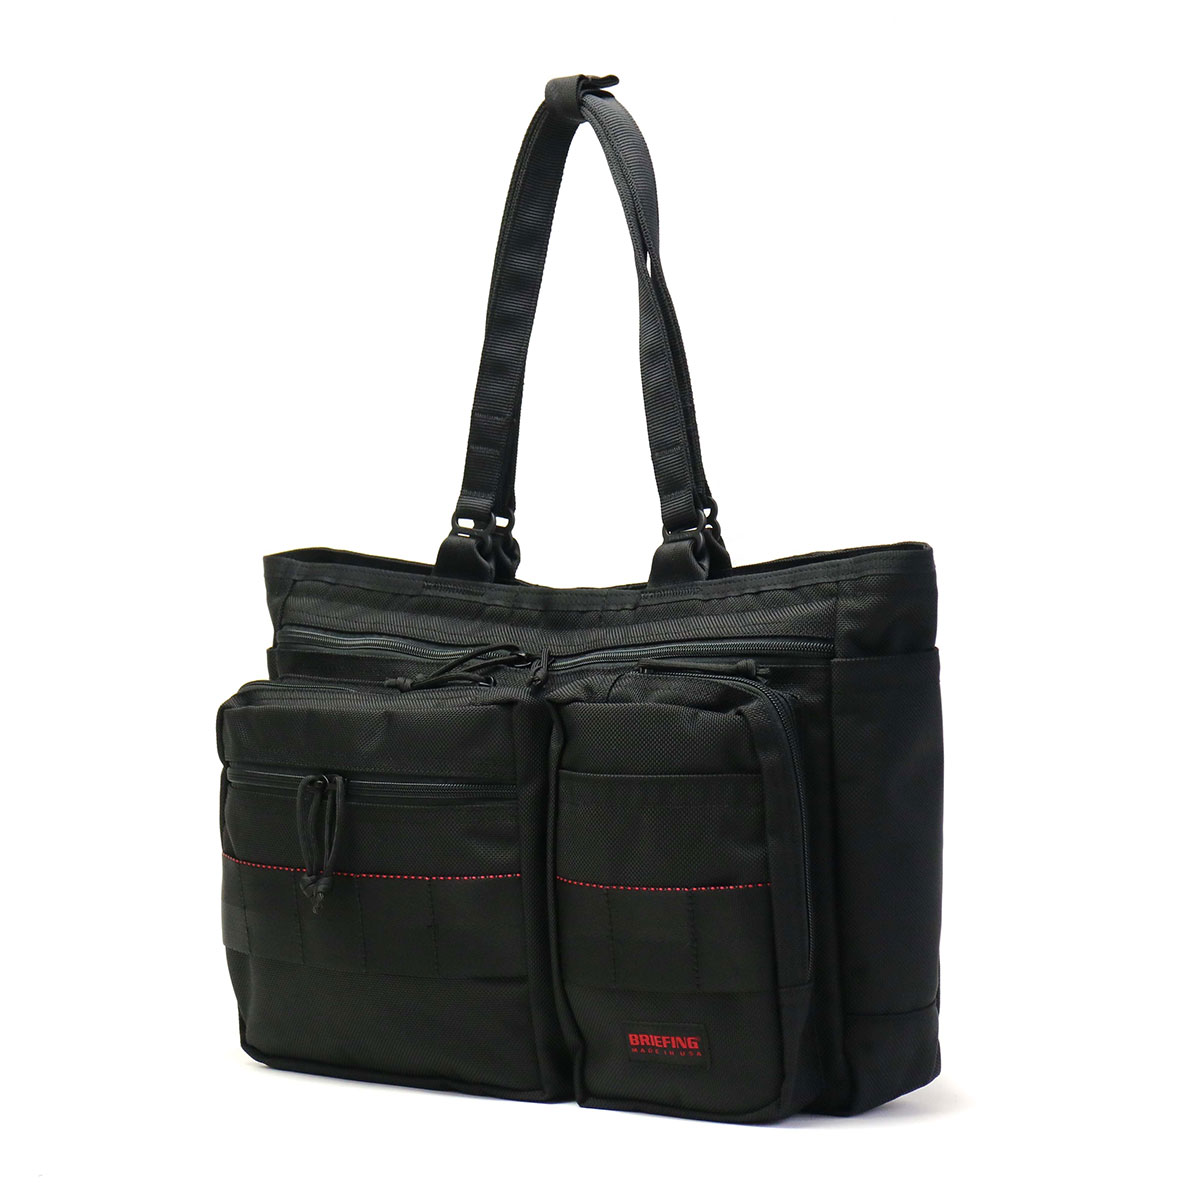 BRIEFING BS TOTE WIDE tote bag business A4 men's women's BRF301219